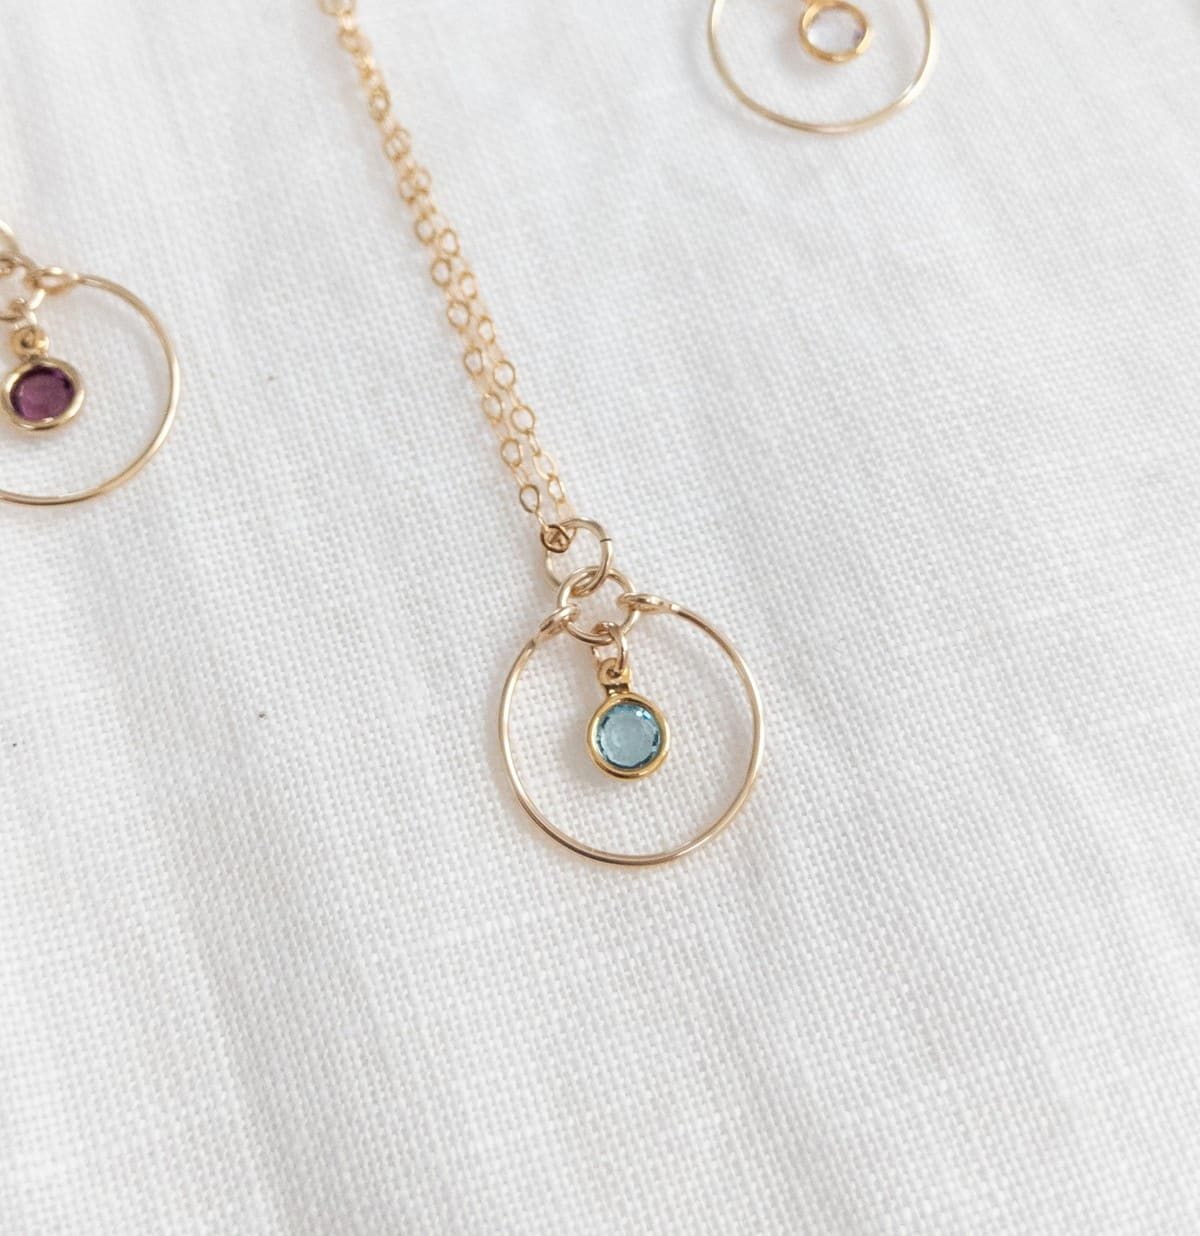 Gem Necklace Aquamarine In 14k Gold Filled By Little Hangings